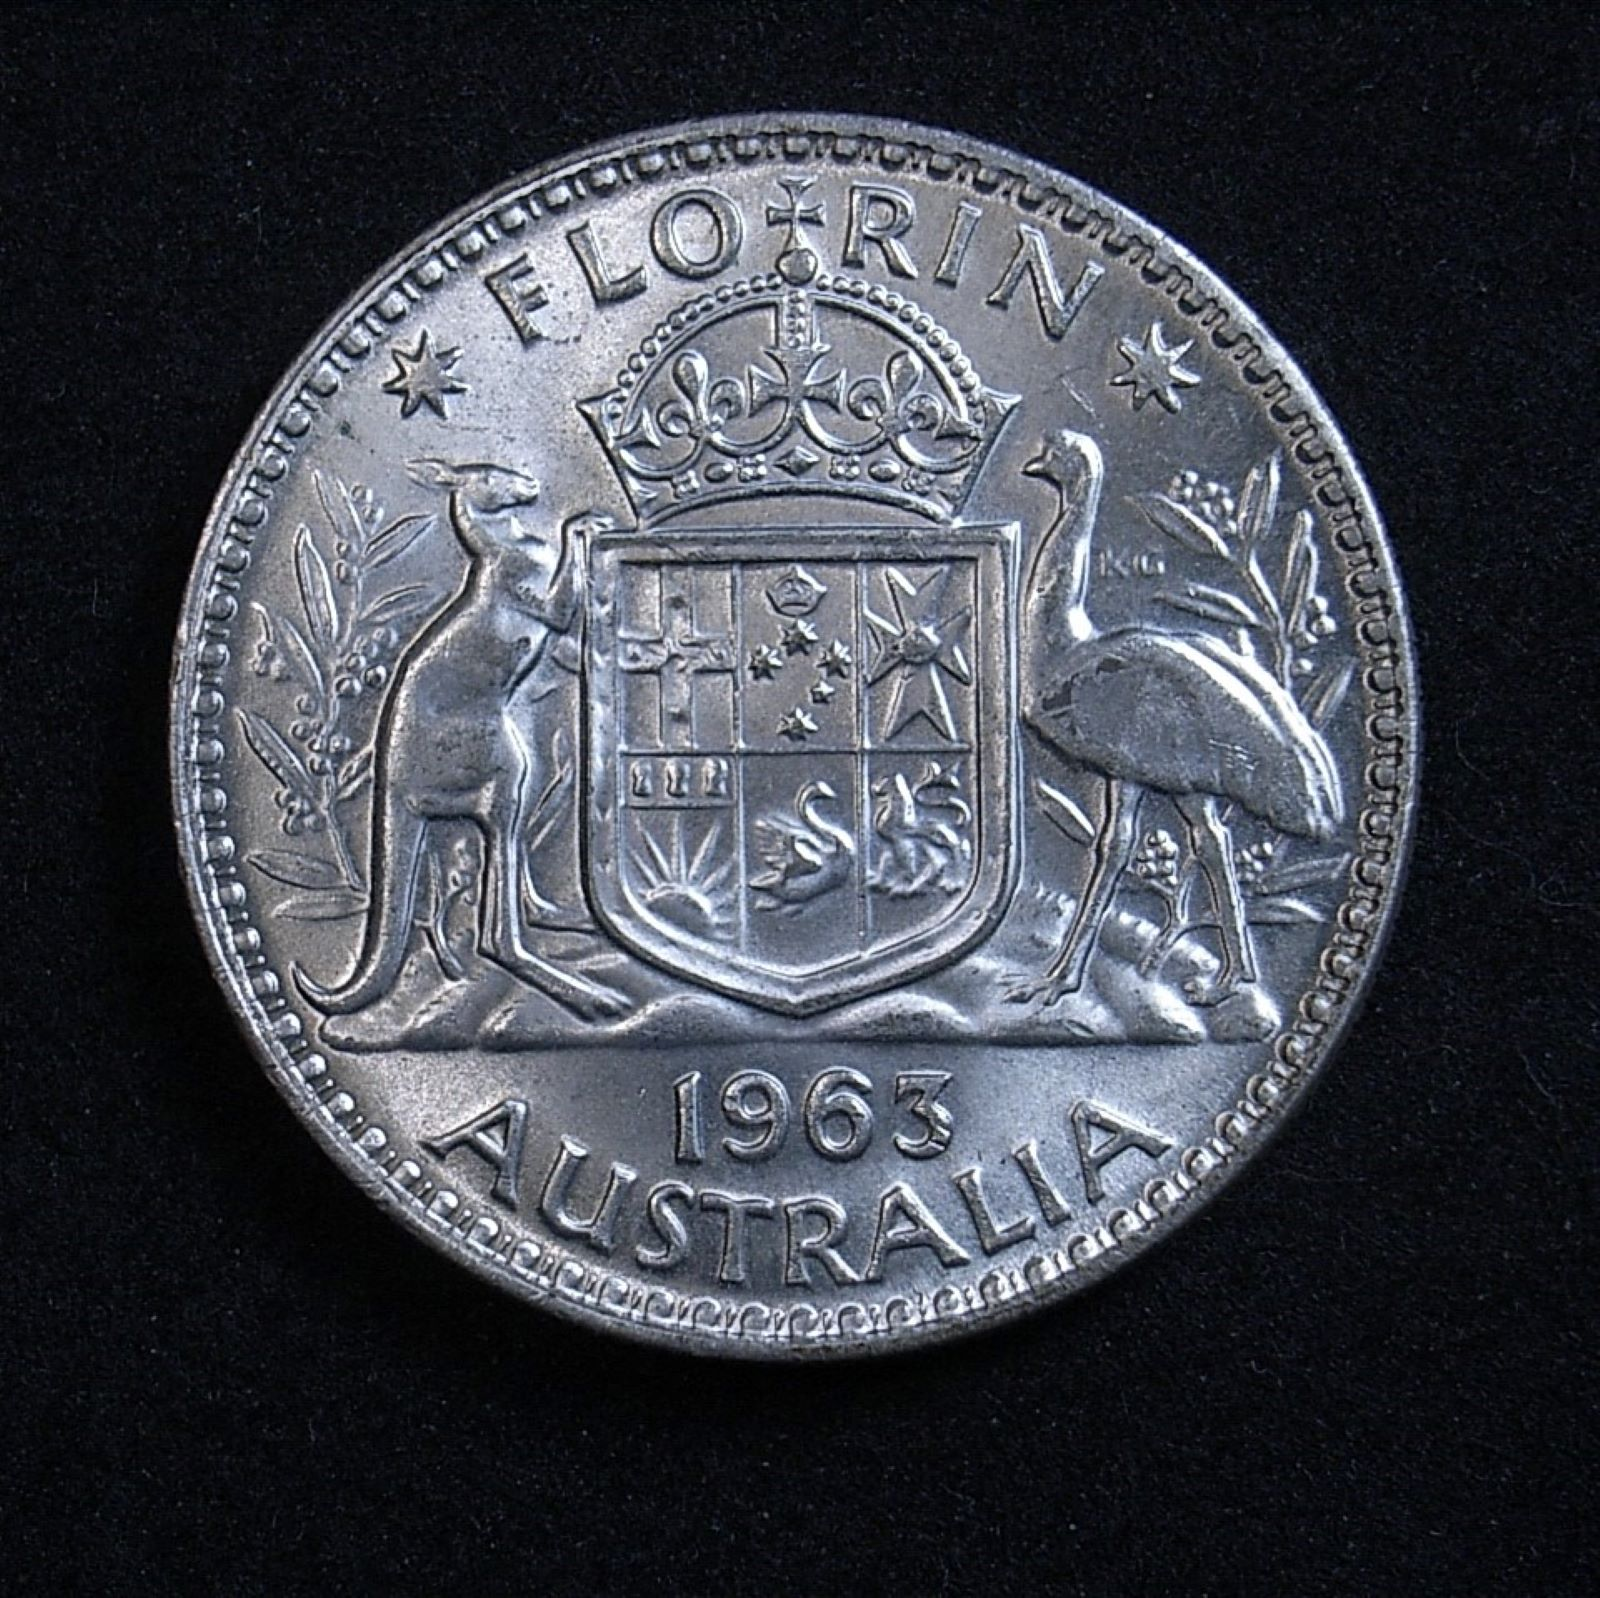 Close up Aussie florin 1963 reverse, new light angle highlighting the coin's detail